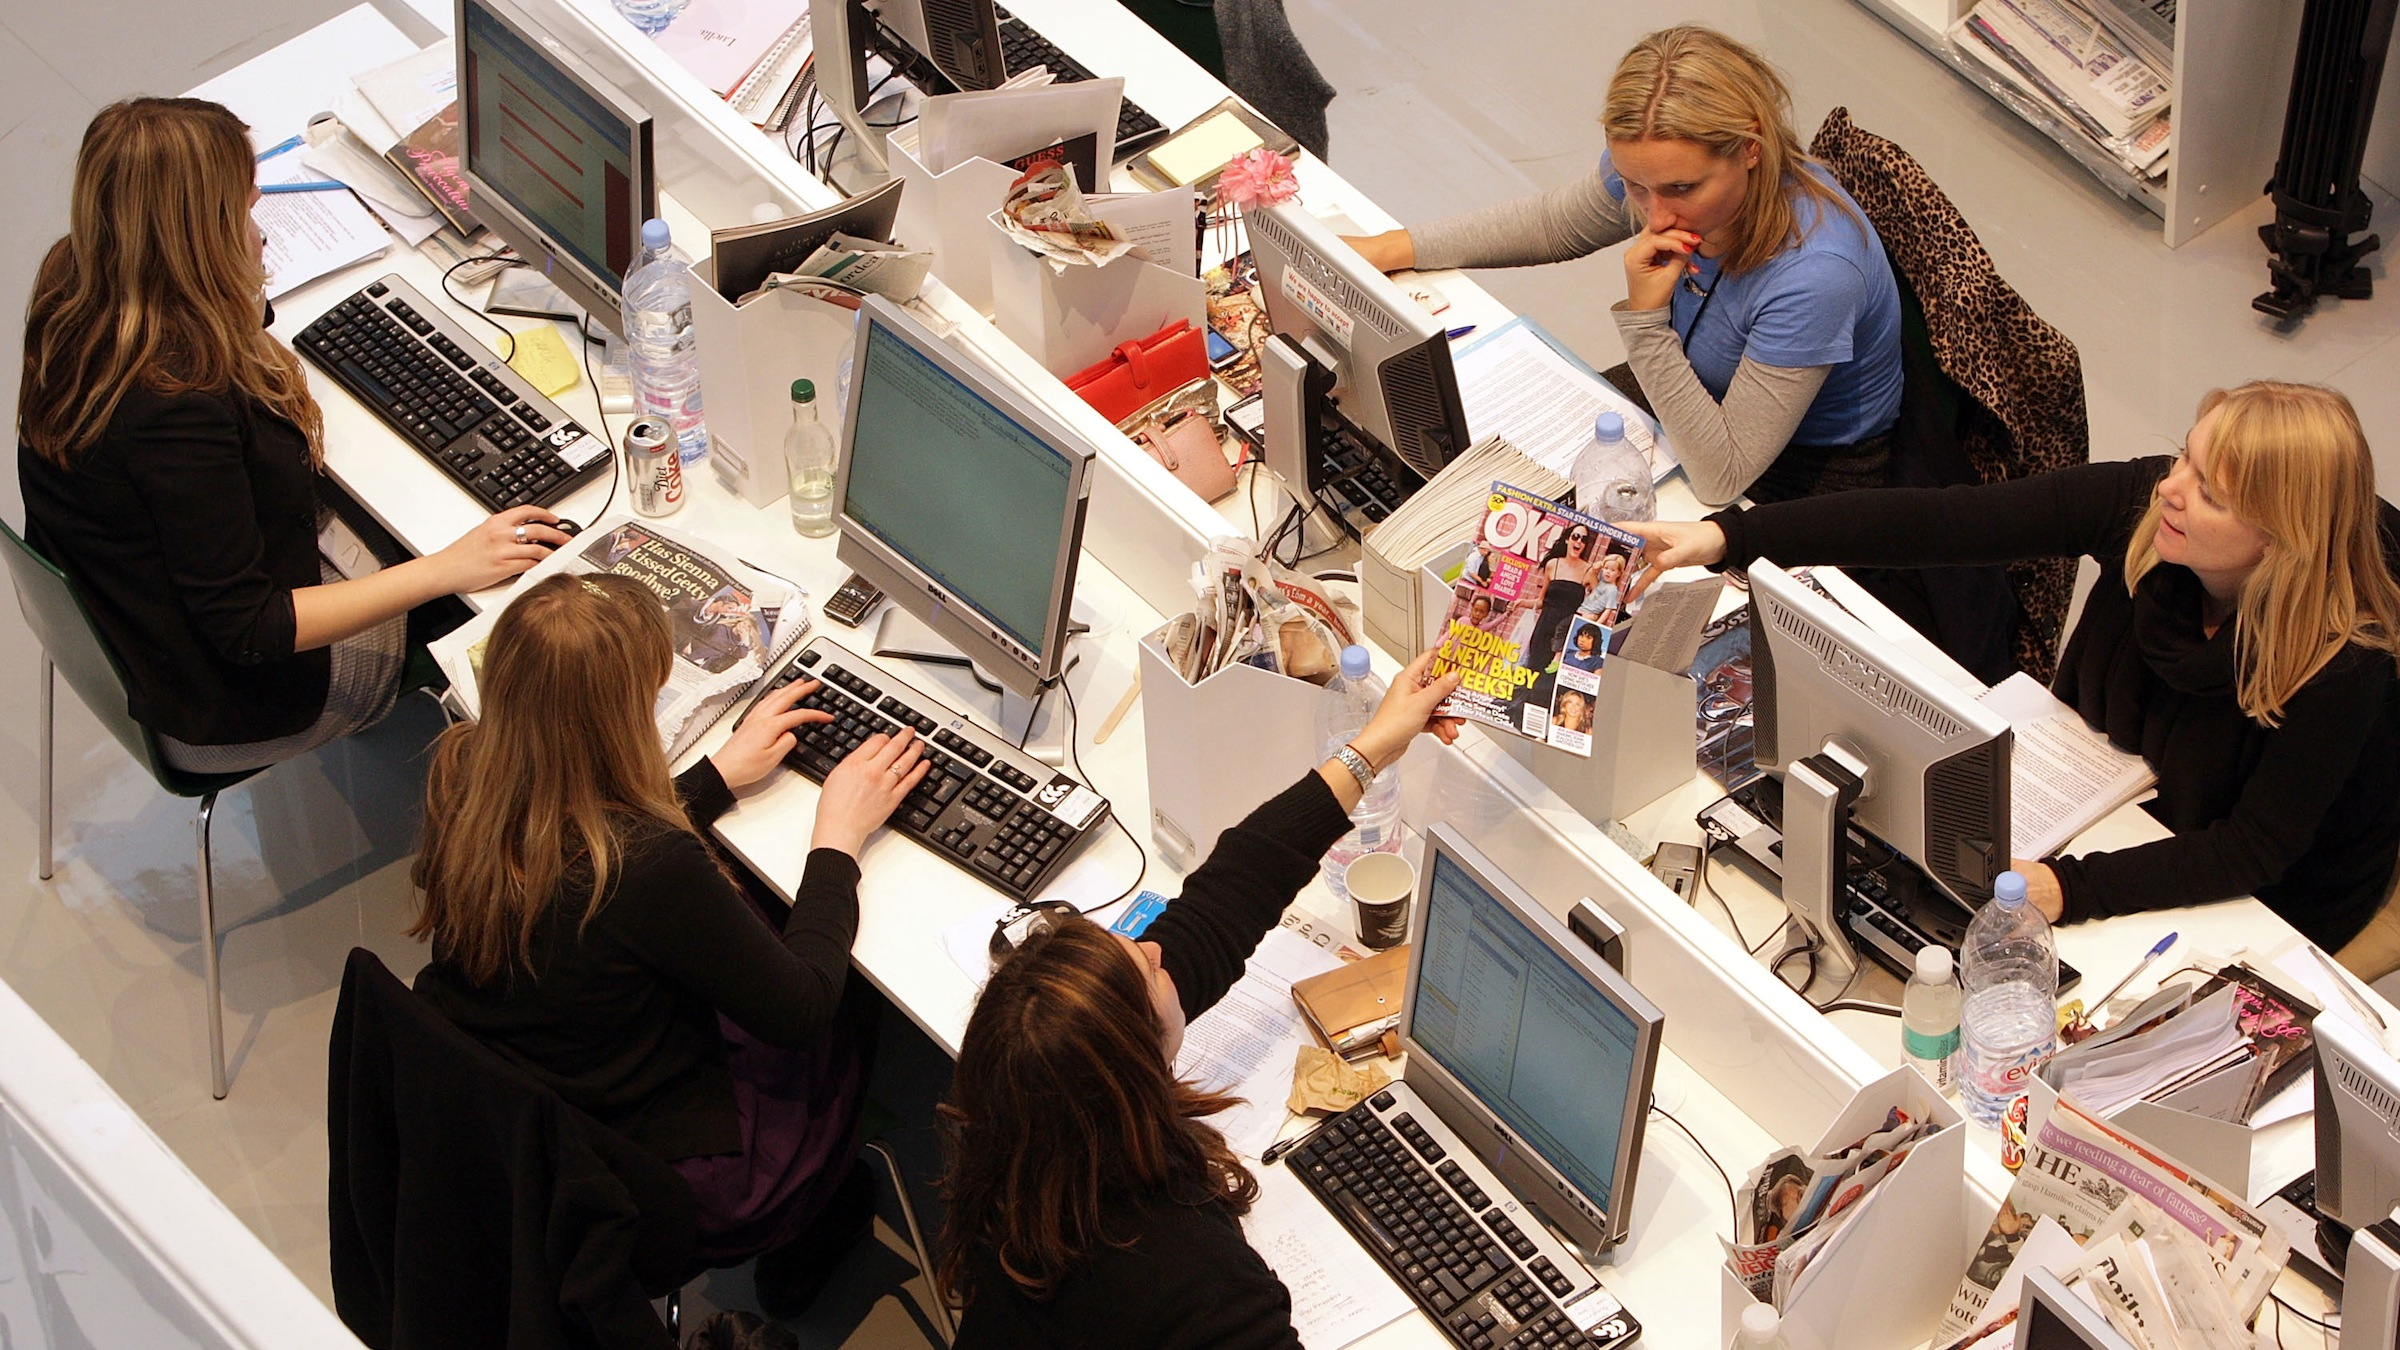 Neuroscientists have figured out why you can't concentrate at work